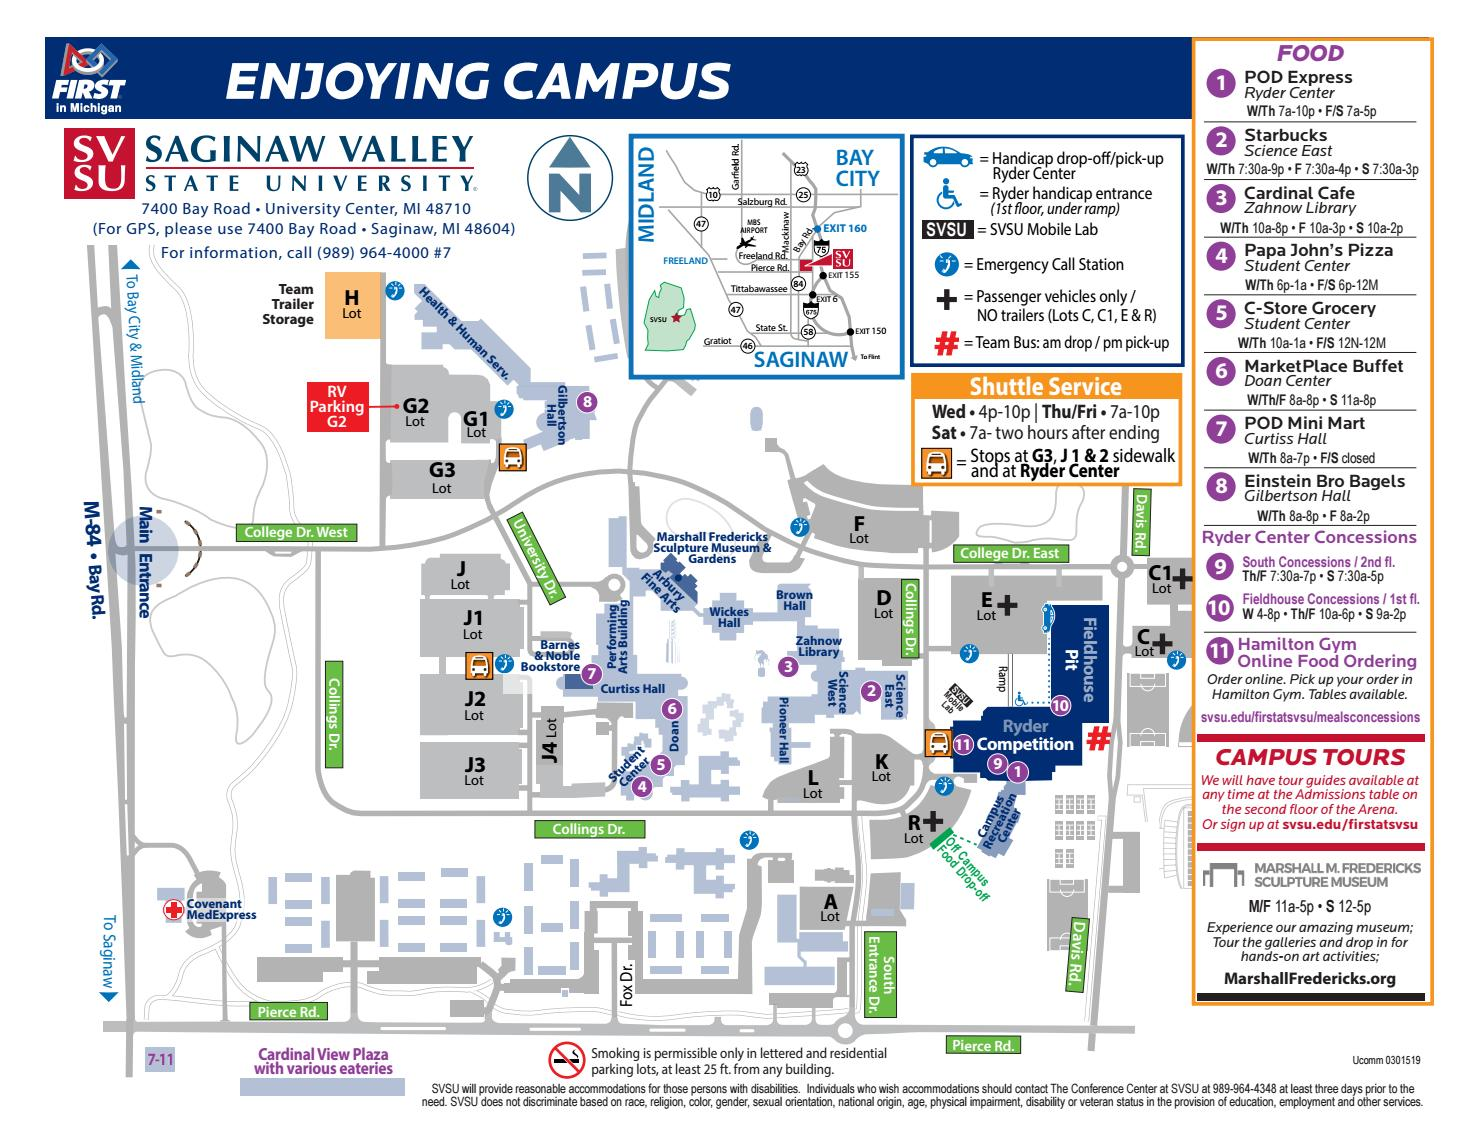 Enjoy Campus Map - SVSU by Saginaw Valley State University ... on southern polytechnic state university campus map, lake superior state university campus map, montcalm community college campus map, shawnee community college campus map, stan state campus map, penn state shenango campus map, delaware community college campus map, state fair community college campus map, illinois valley community college campus map, grand valley state university campus map, st. cloud state university campus map, southern connecticut state university campus map, elizabeth city state university campus map, southeast missouri state university campus map, sul ross state university campus map, black hills state university campus map, southwest minnesota state university campus map, northwest missouri state university campus map, stephen f. austin state university campus map,